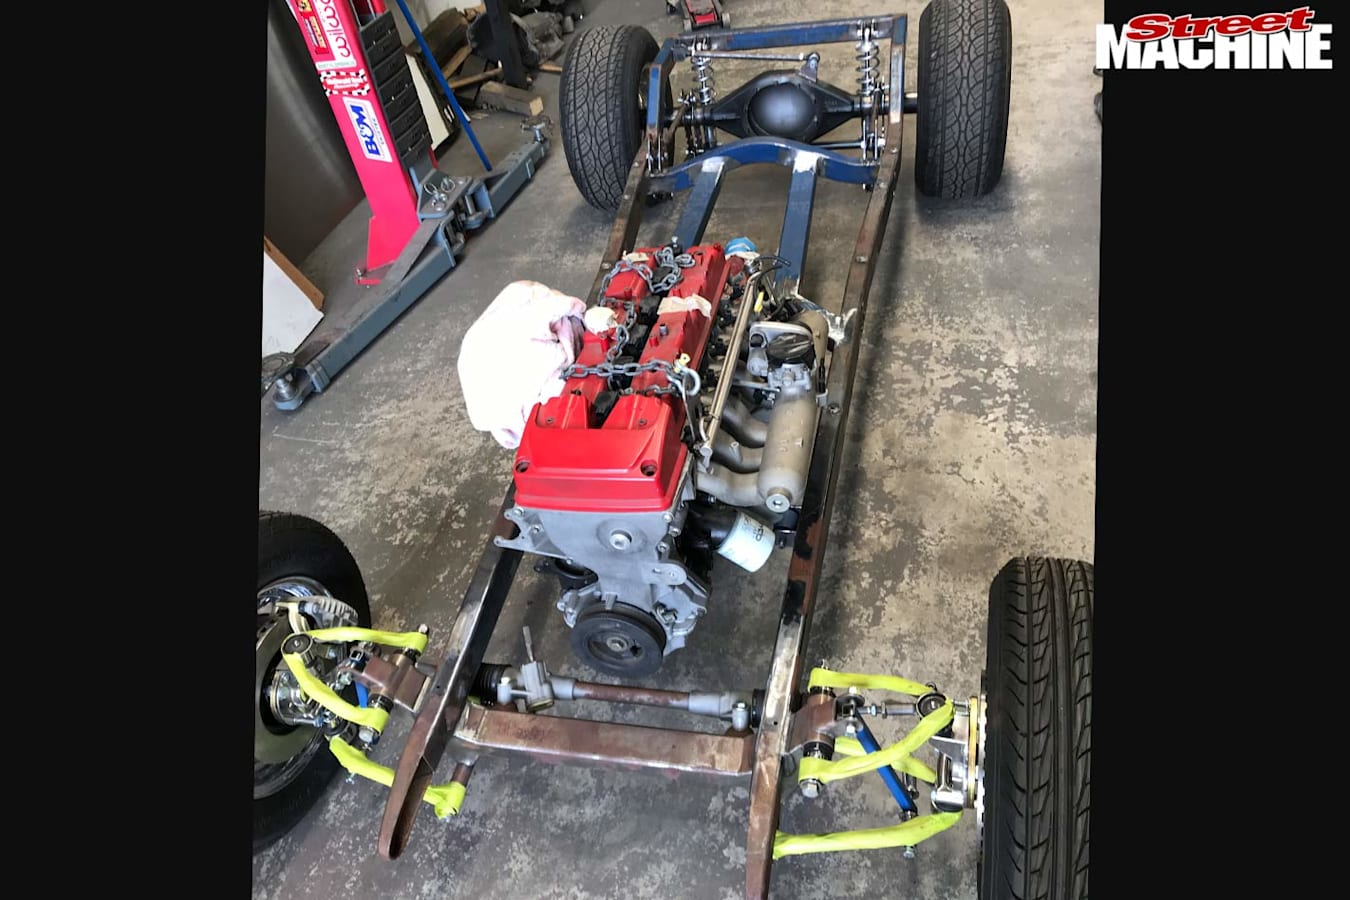 Ford Model A chassis